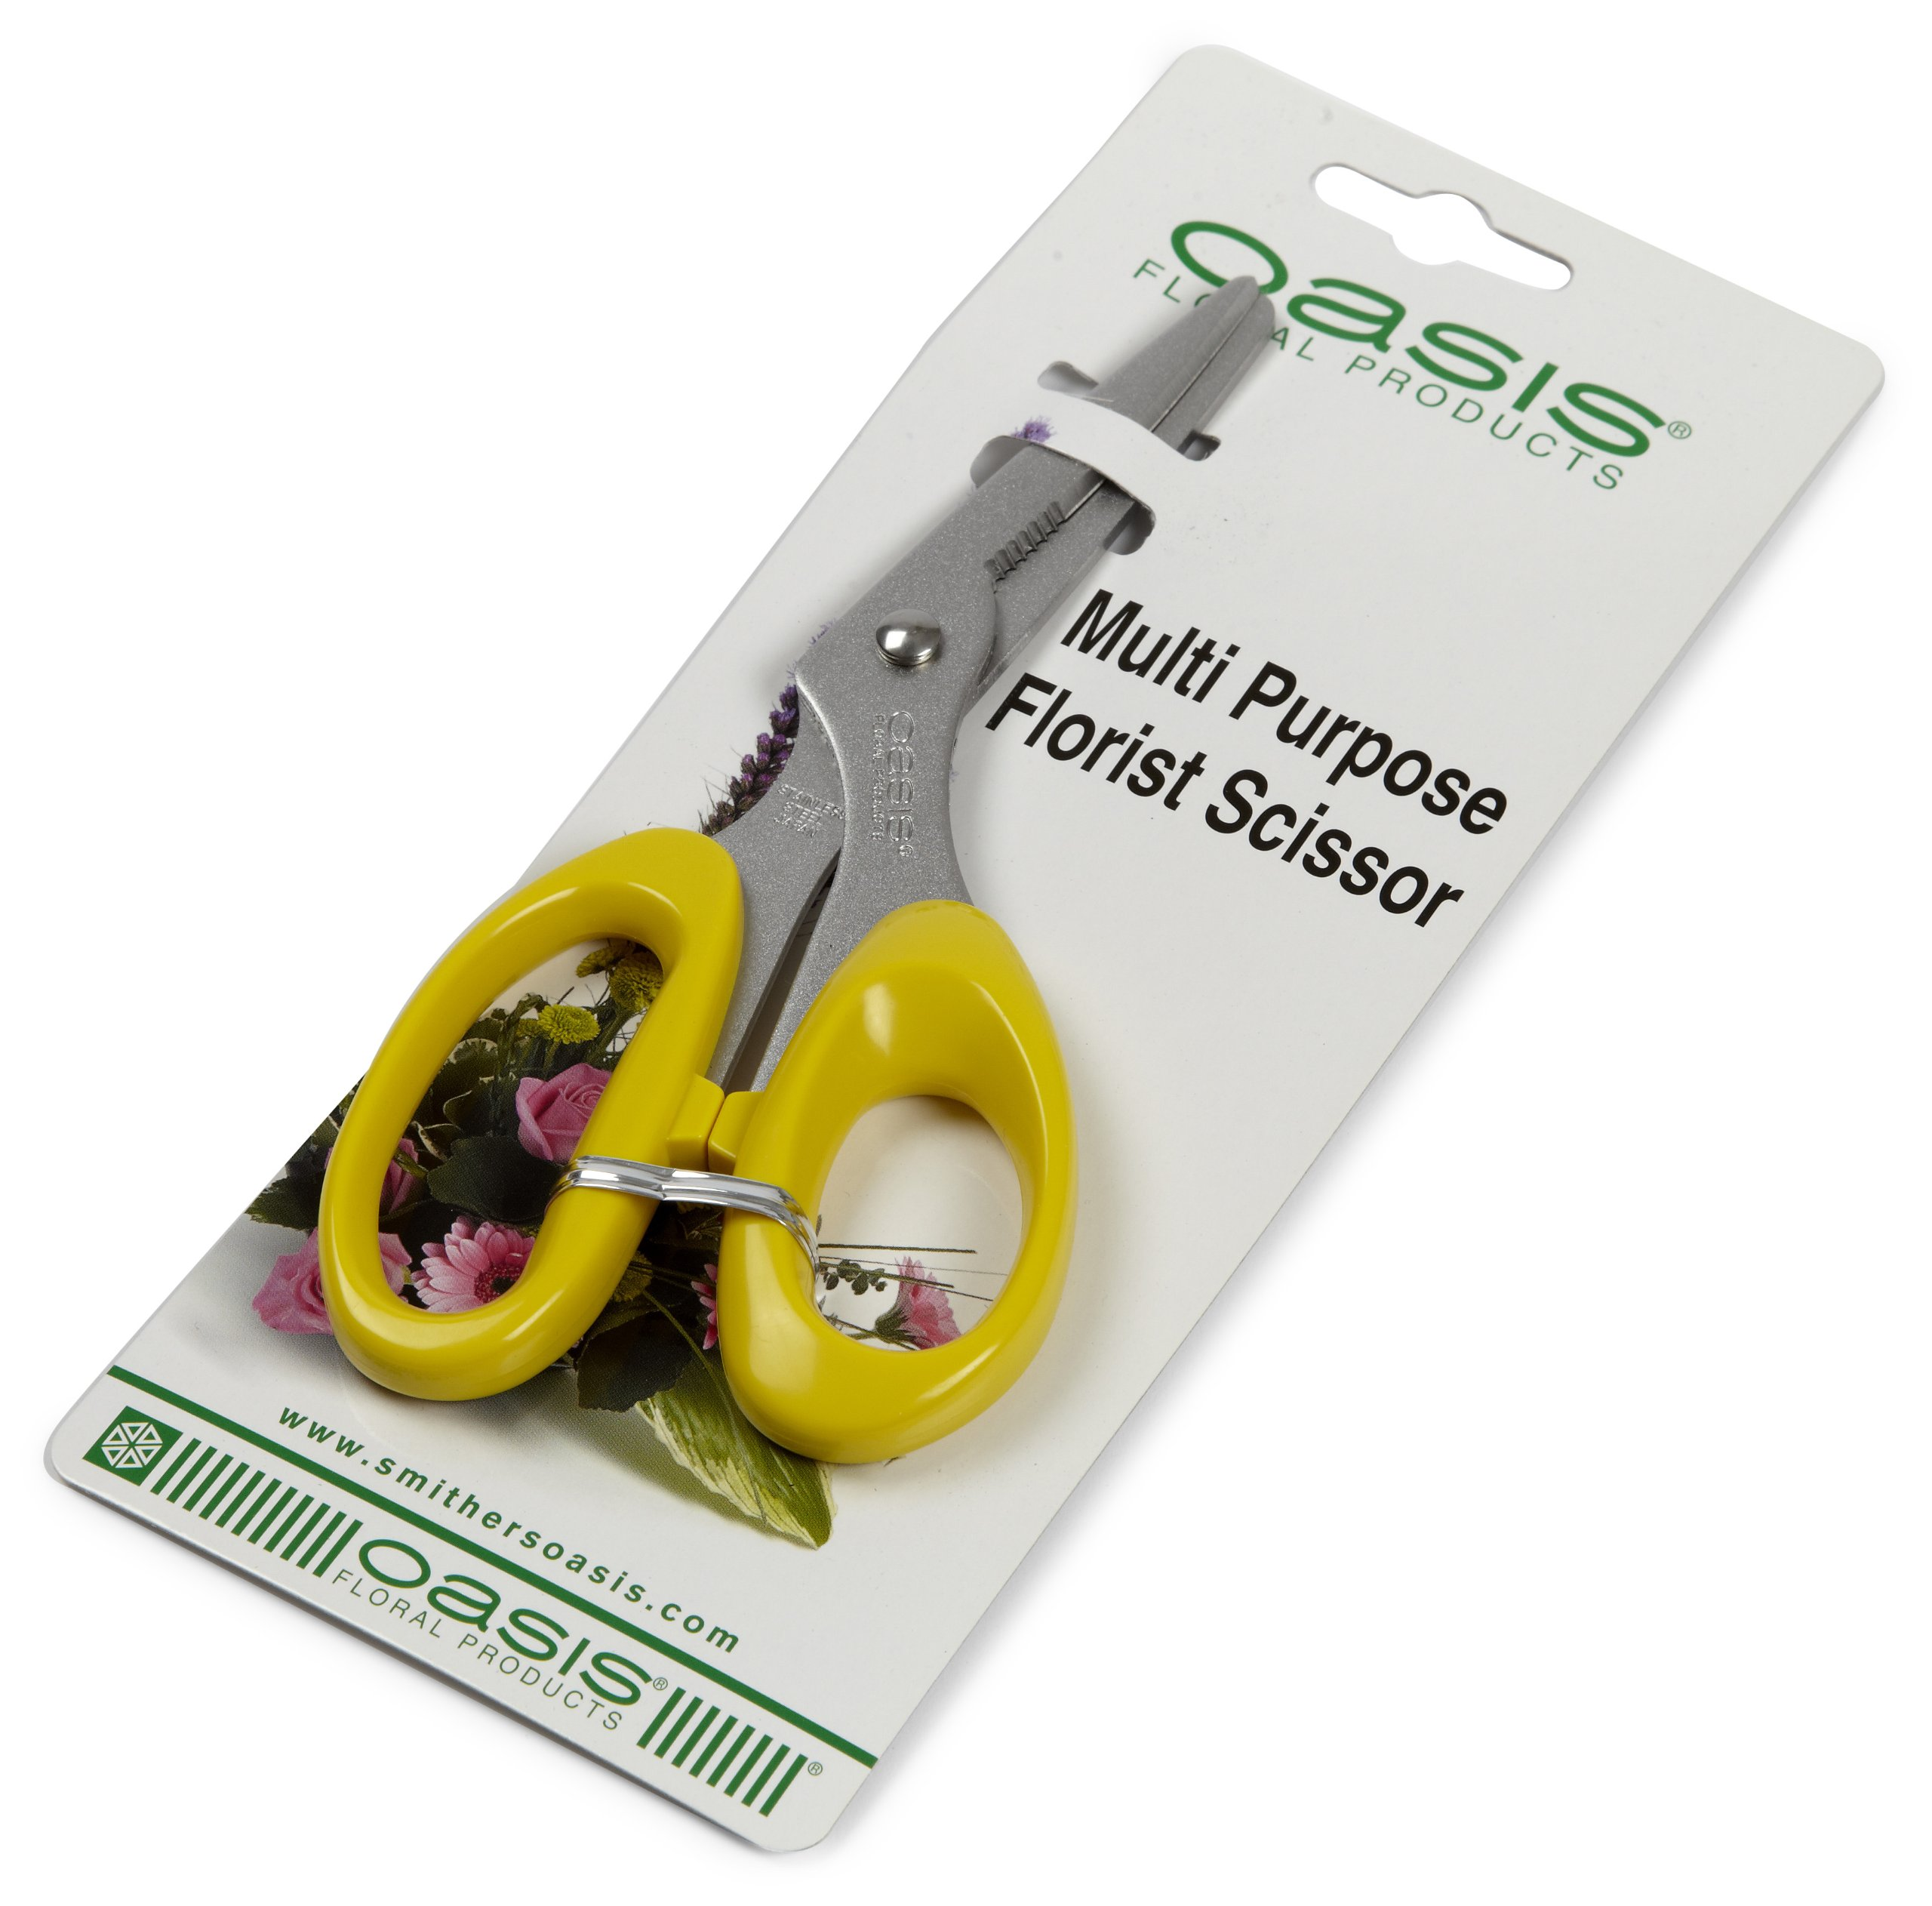 Oasis Stainless Steel Multi Purpose Floral Scissor x1